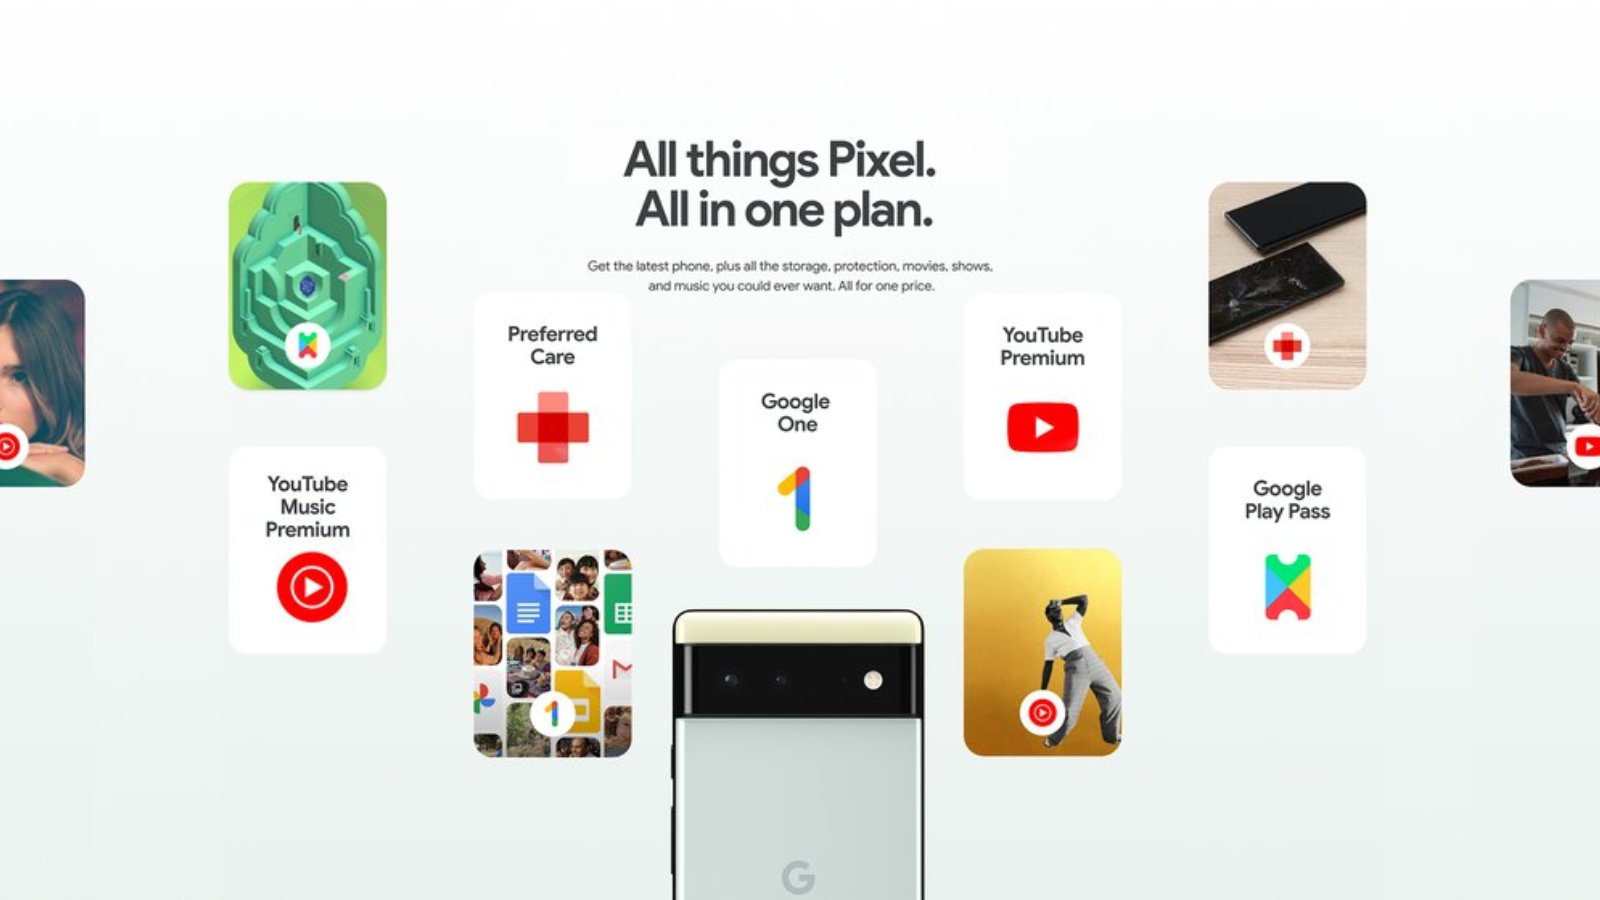 Google Pixel Pass: videos, music, games, storage, a device, and protection in one subscription